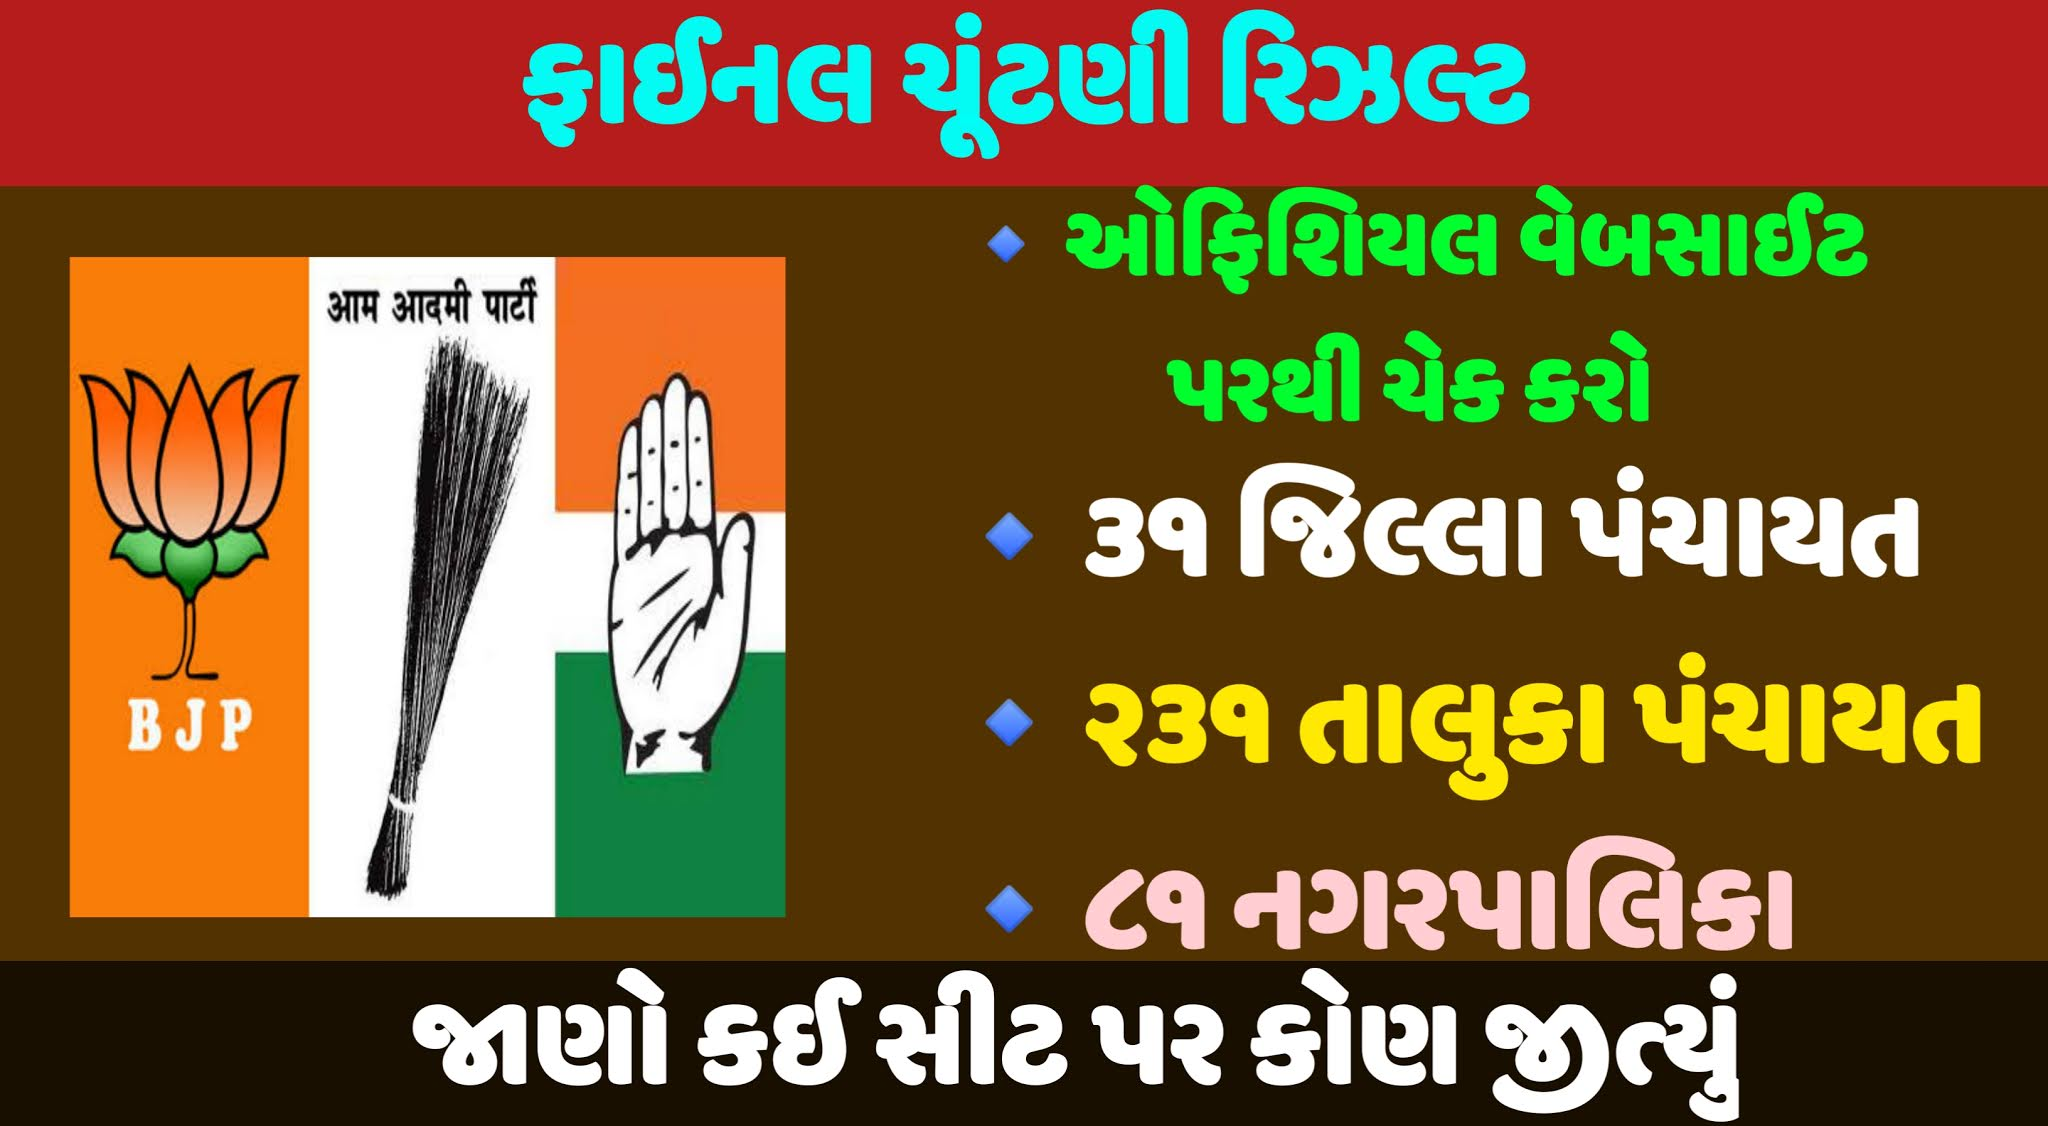 ELECTION RESULTS 2021,GUJARAT COUNTING OF VOTES,GUJARAT ELECTION RESULTS 2021,GUJARAT LOCAL BODY ELECTION RESULT,GUJARAT LOCAL BODY ELECTION